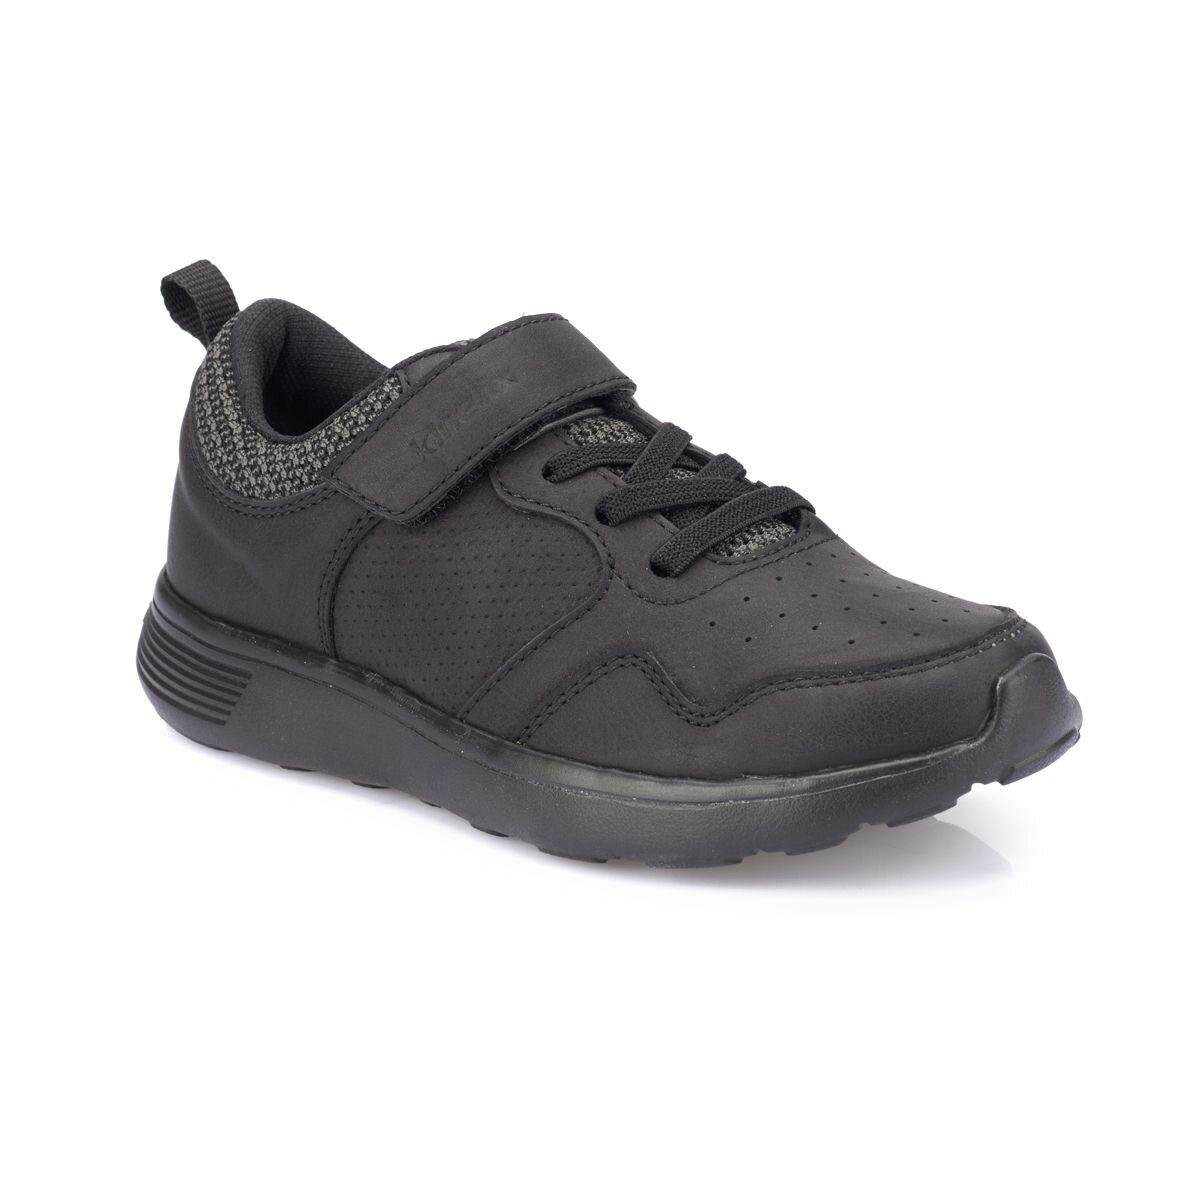 FLO HAYNES Black Male Child Sneaker Shoes KINETIX